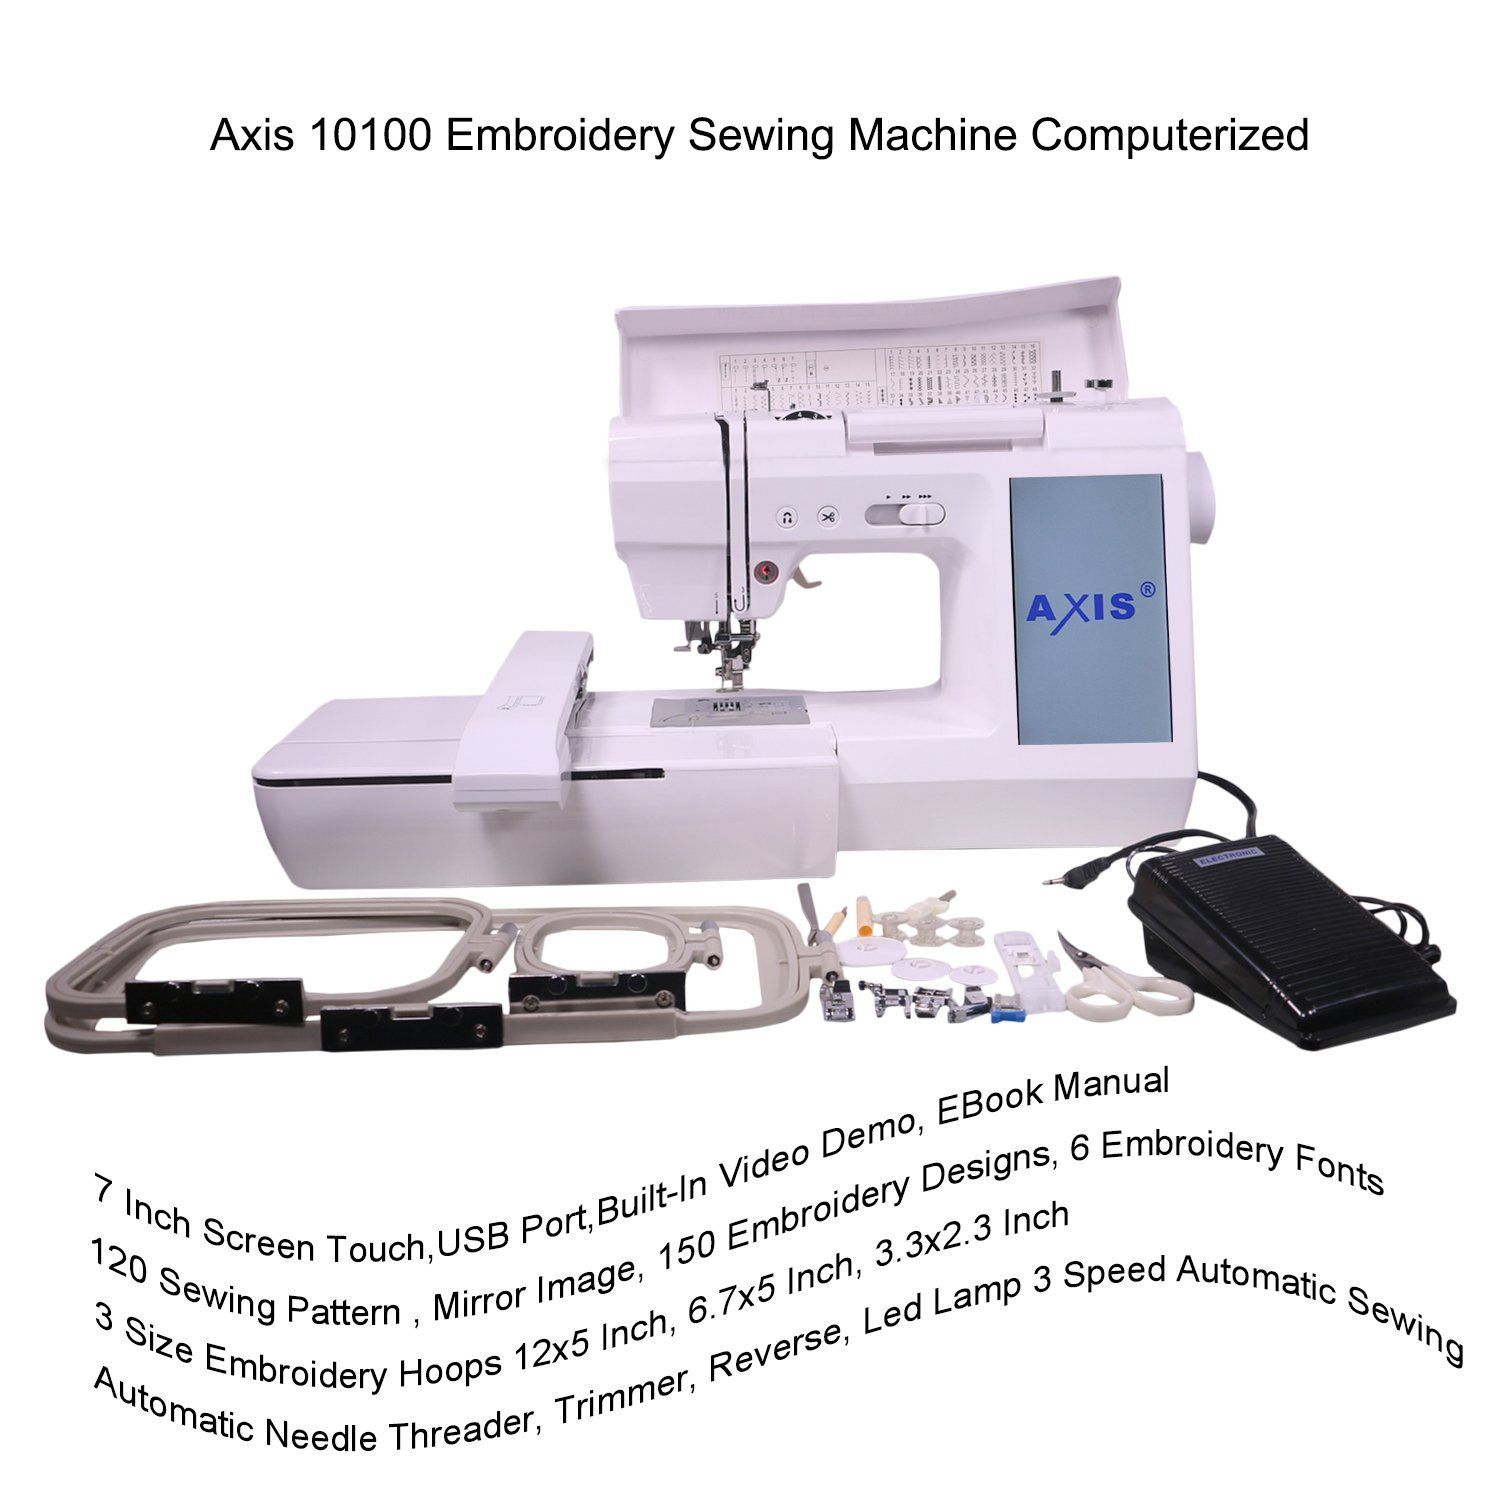 Axis 10100 Embroidery Sewing Machine Computerized 7 Inch Screen Touch USB  Port Built-In Video Demo EBook Manual 120 Sewing Pattern 150 Embroidery  Designs 6 ...